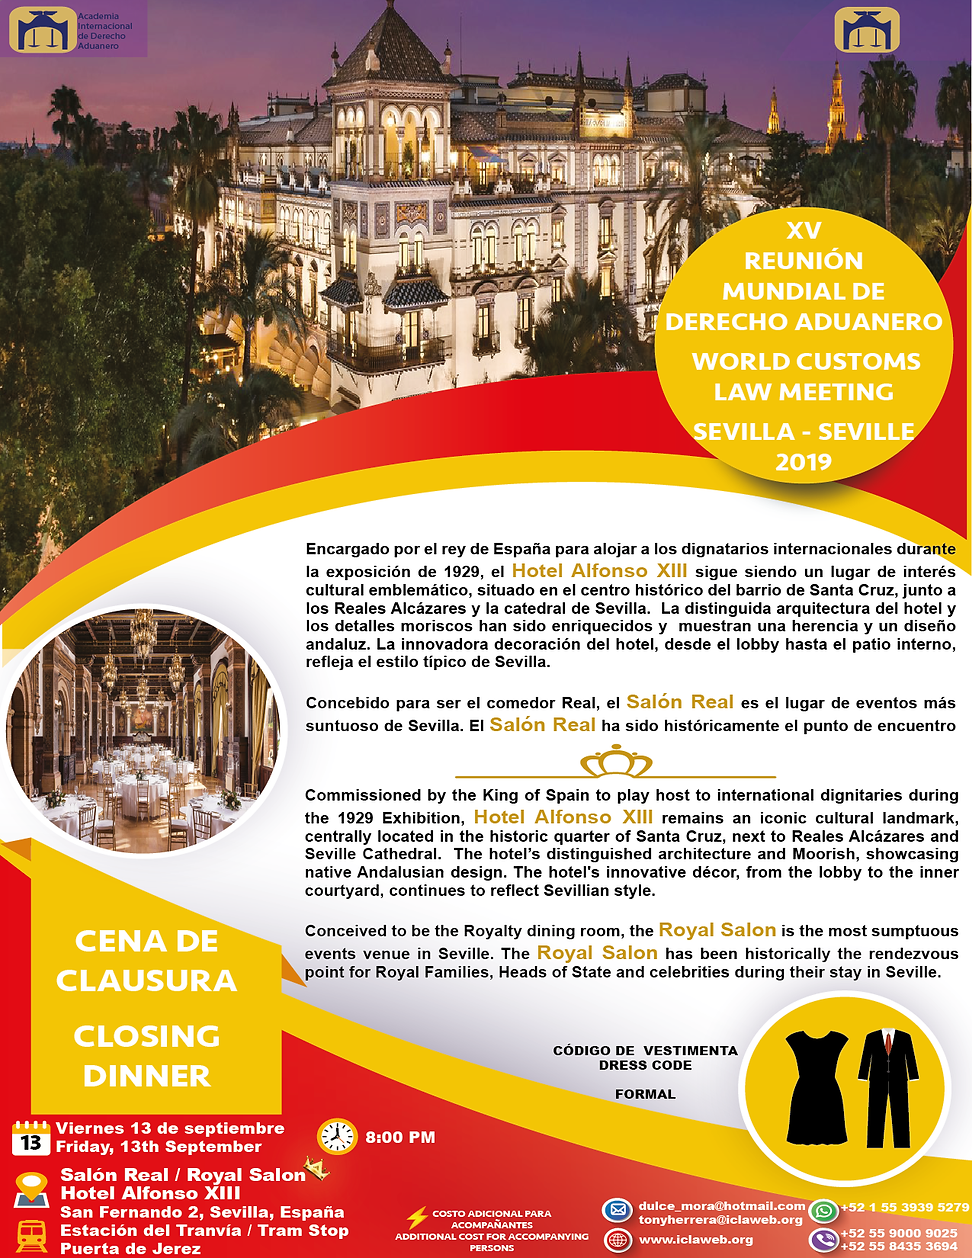 FLYER CENA DE CLAUSURA. CLOSING DINNER_M